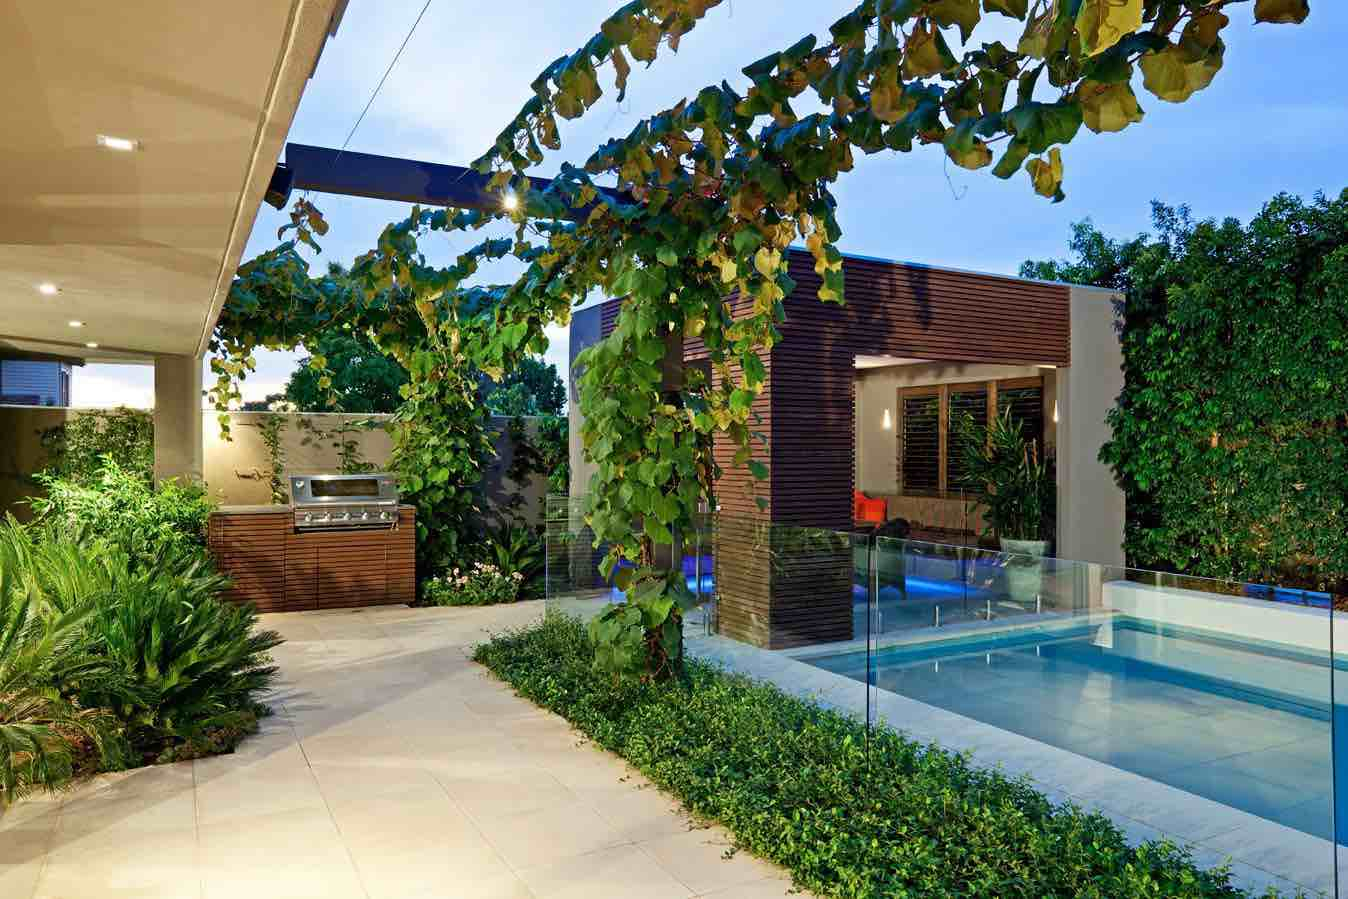 41 backyard design ideas for small yards worthminer Small backyard